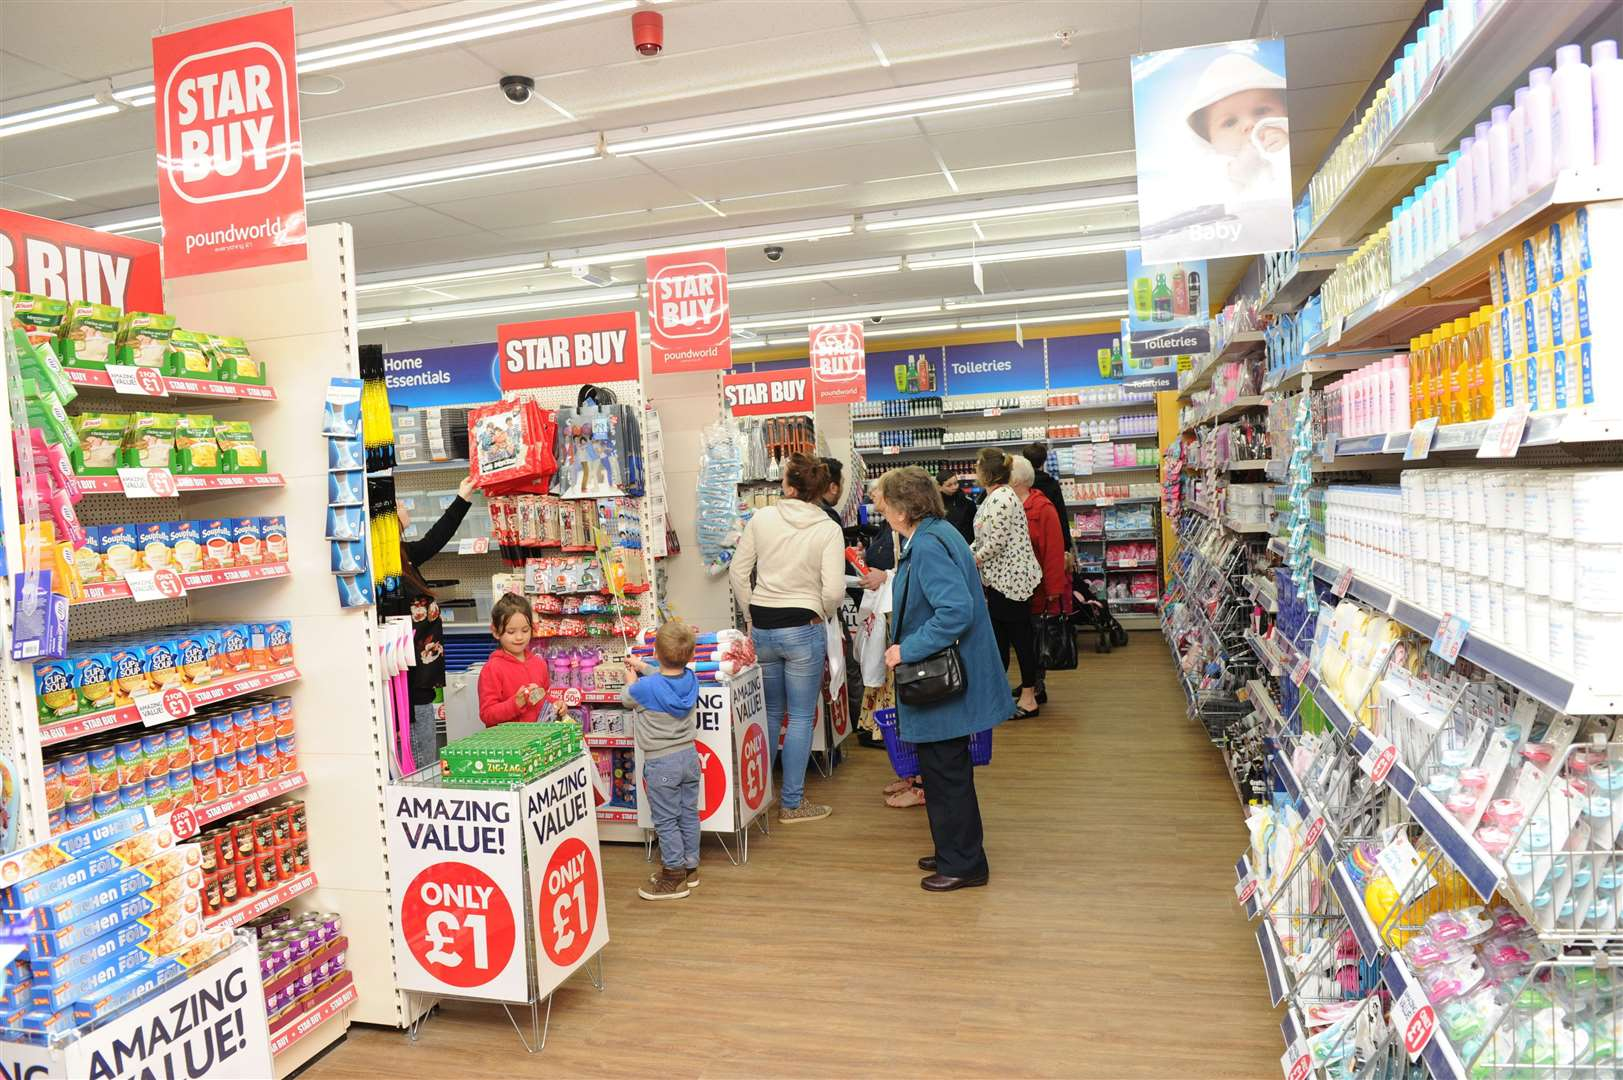 Poundworld in Dartford faces an uncertain future